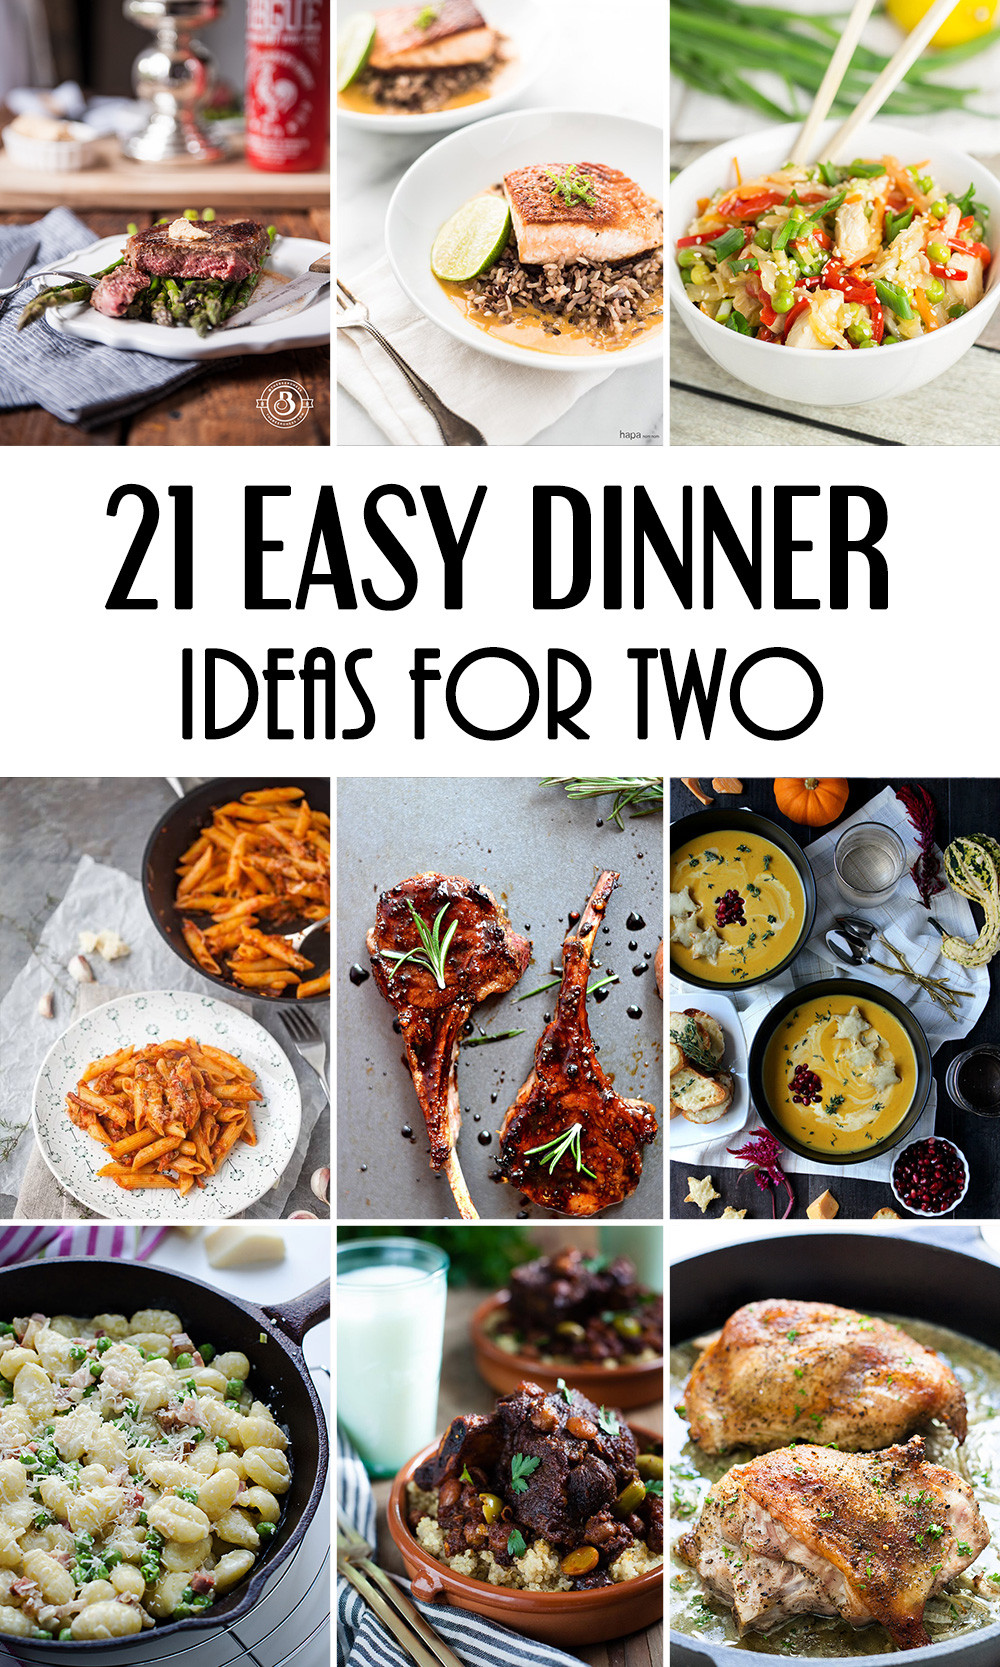 Easy Dinners For One  21 Easy Dinner Ideas For Two That Will Impress Your Loved e